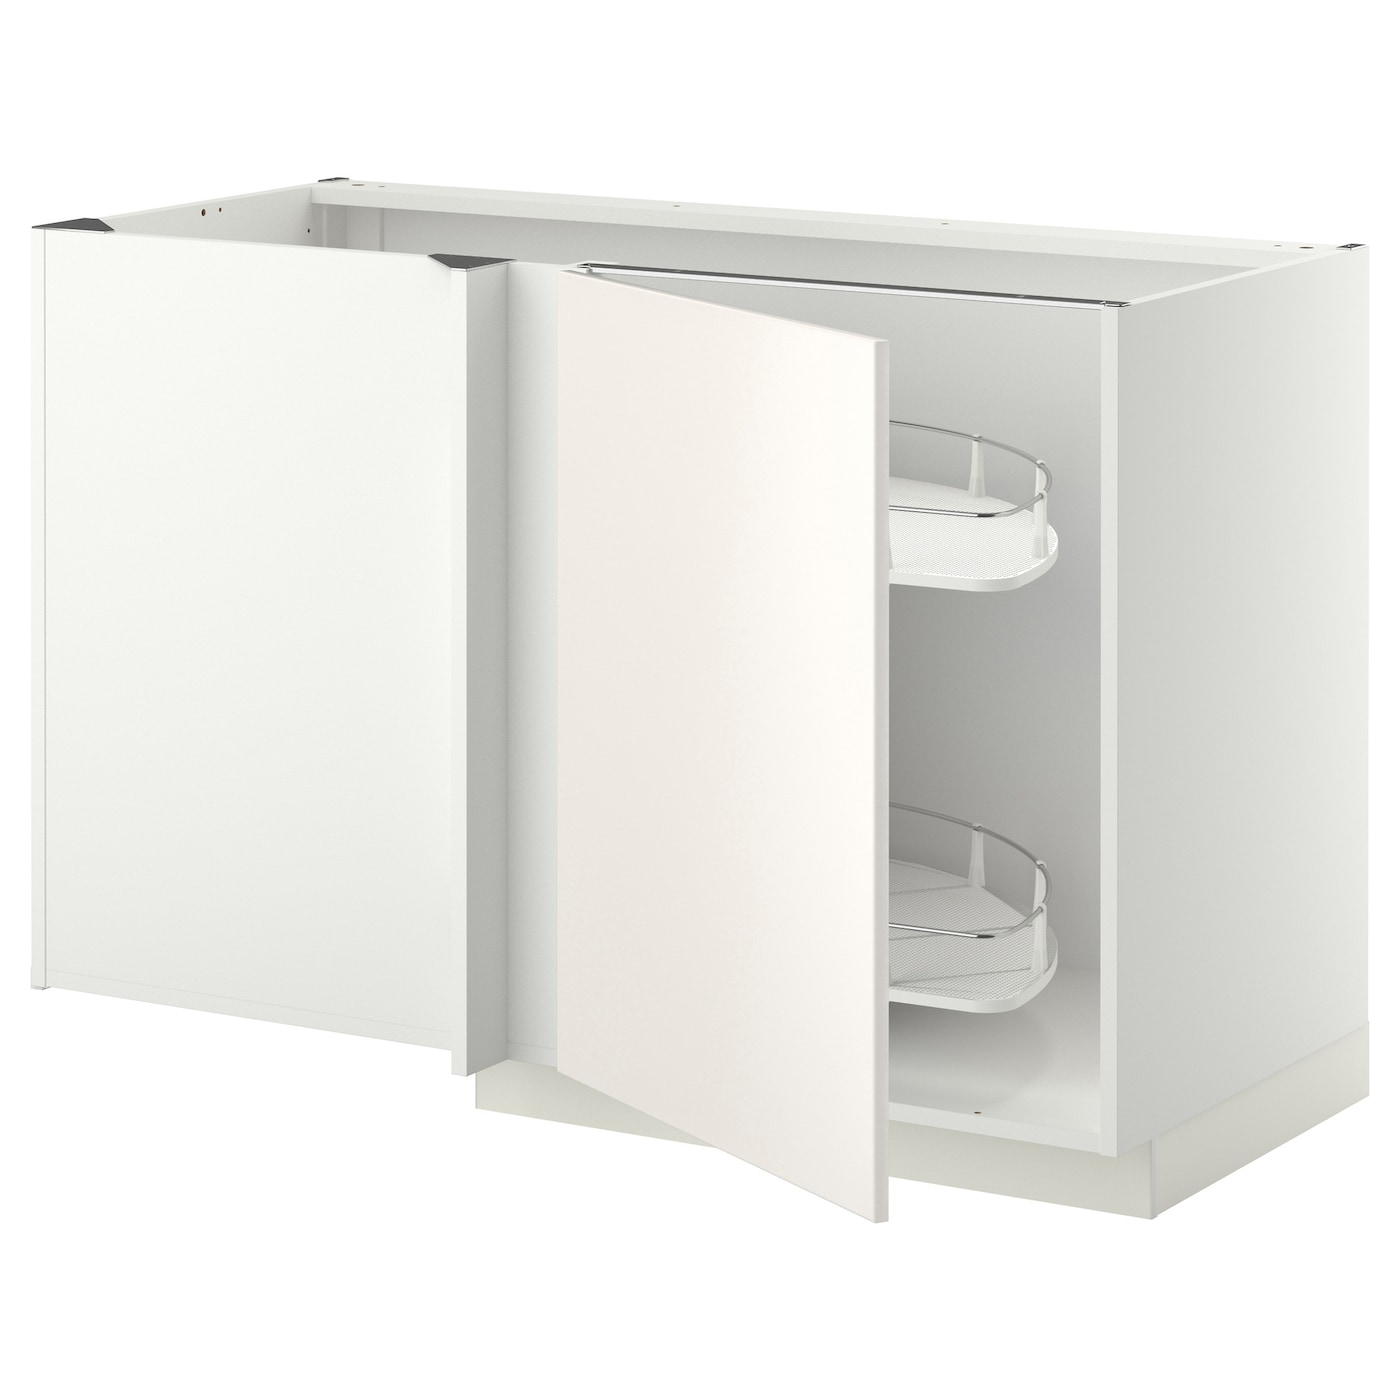 METOD Corner base cab w pull-out fitting White/veddinge white ...